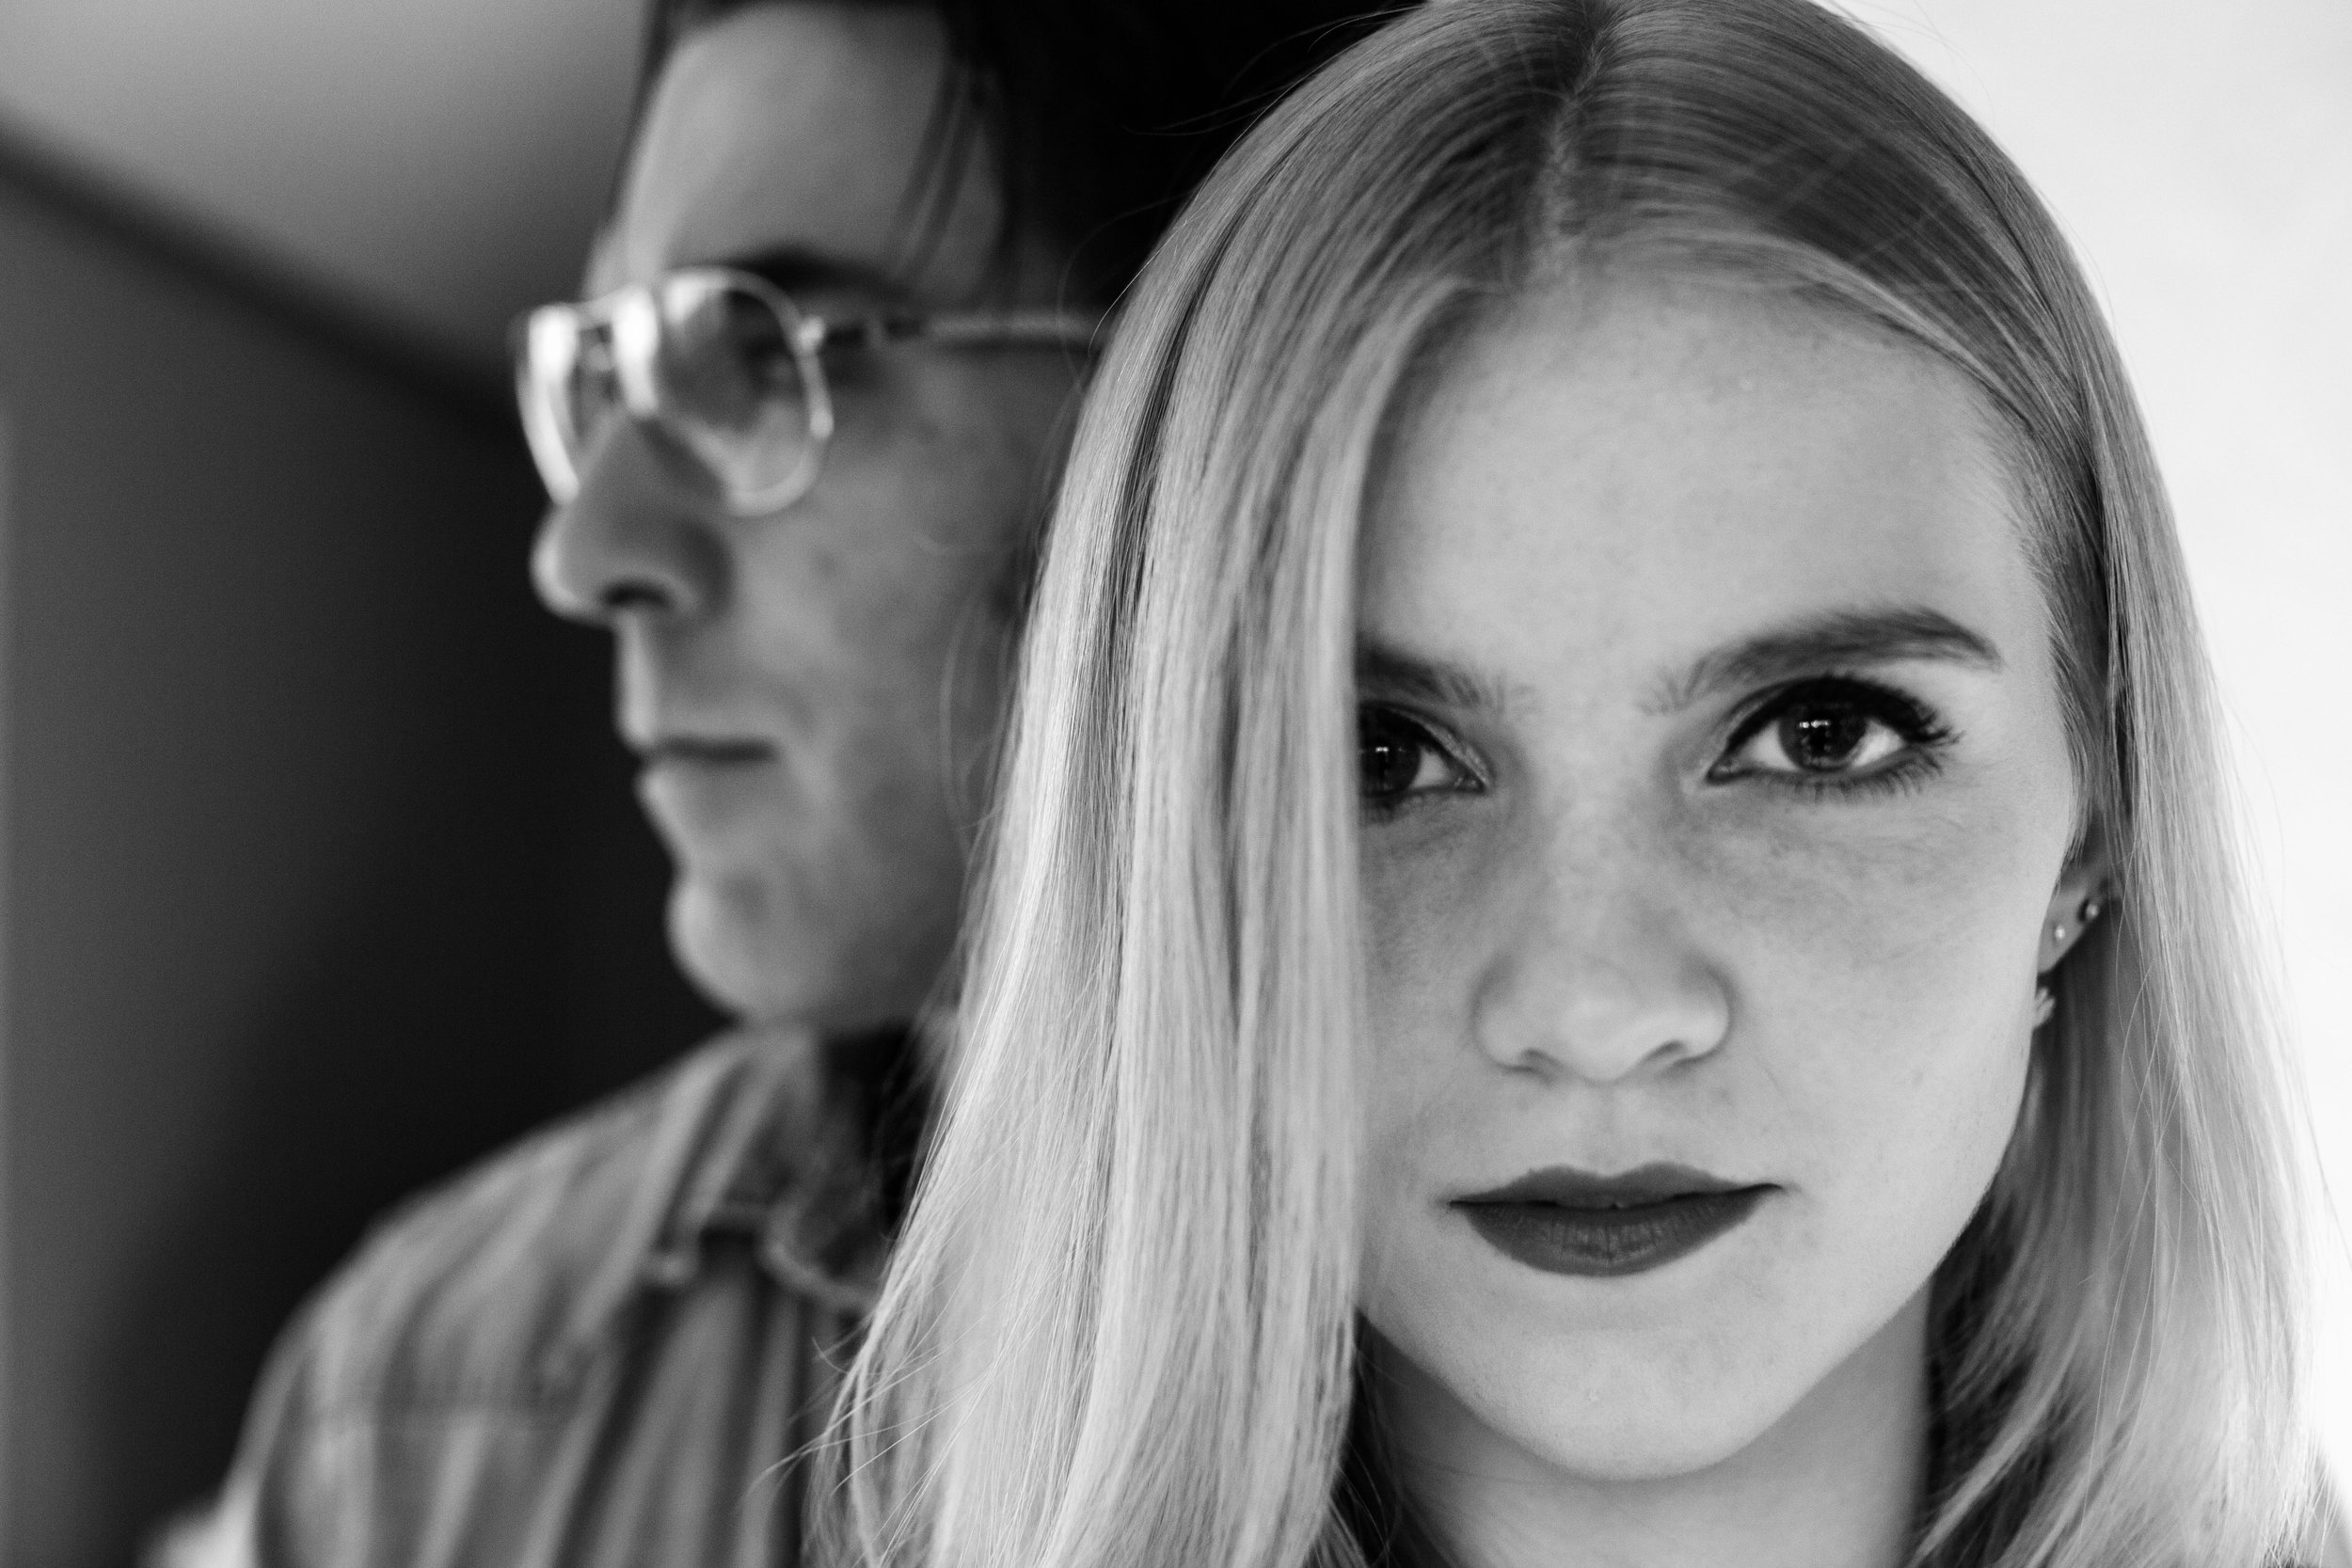 BAND - Website, Photo, Video.Belle of the Fall is a Indie, Folk, Americana Duo based in Northfield, CT. One of the players is the owner of his own recording studio